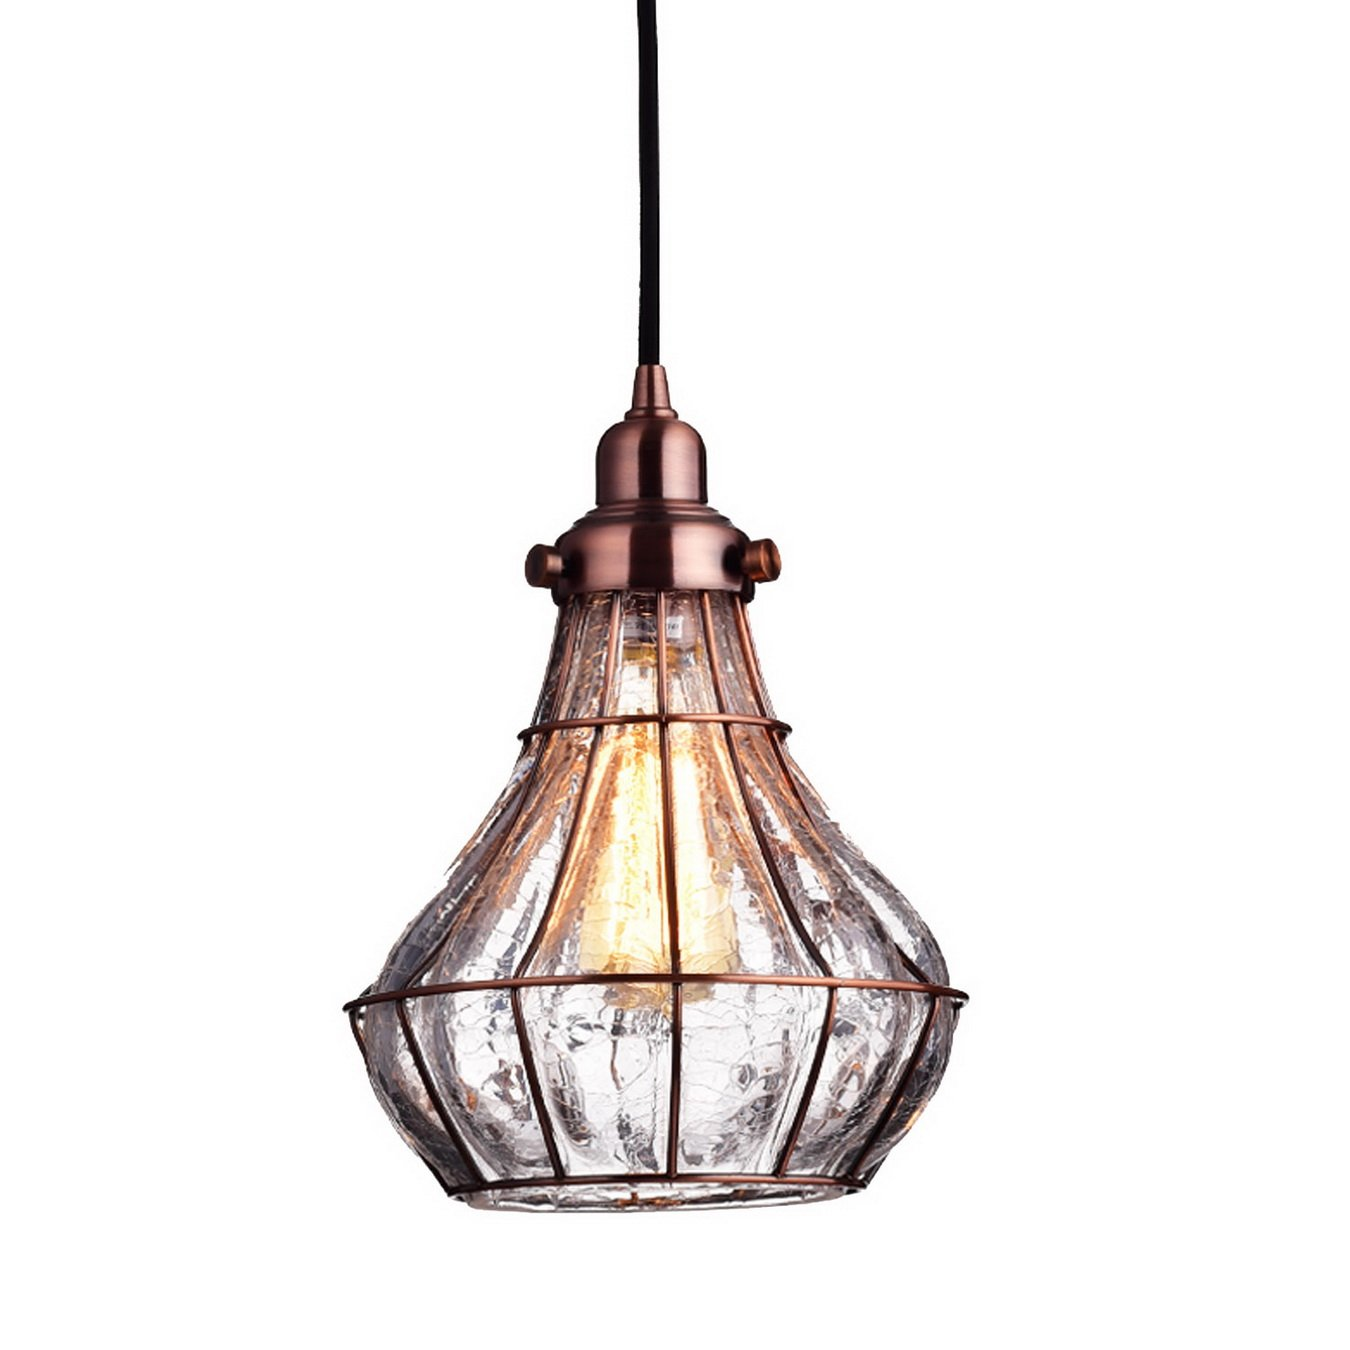 YOBO Lighting Cracked Glass Vintage Wire Cage Ceiling Pendant Light, Red Antique Copper